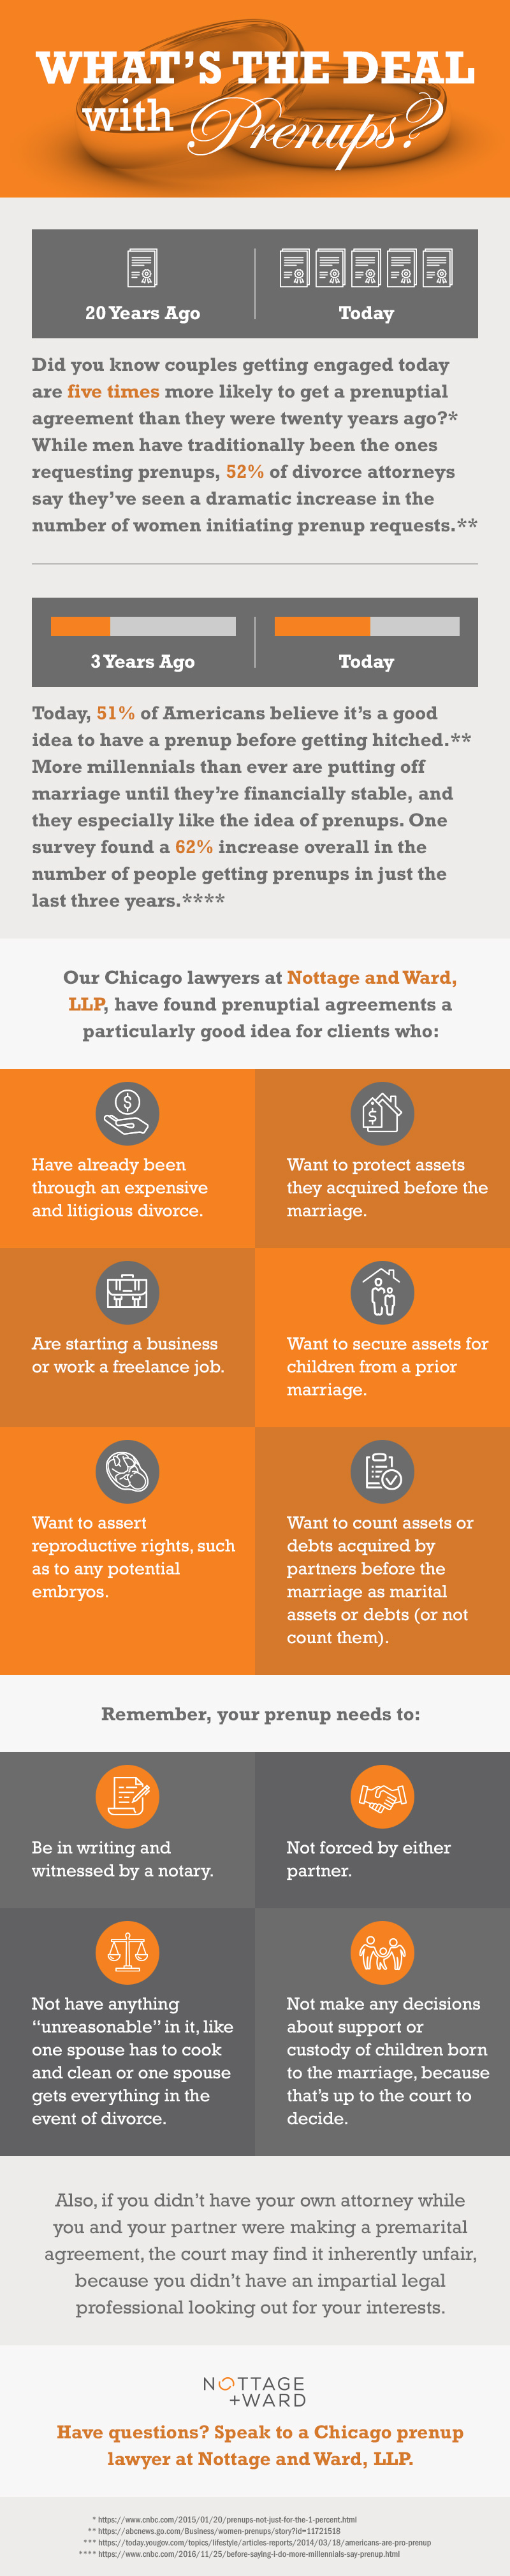 Nottage and Ward, LLP Presents: Prenup Infographic